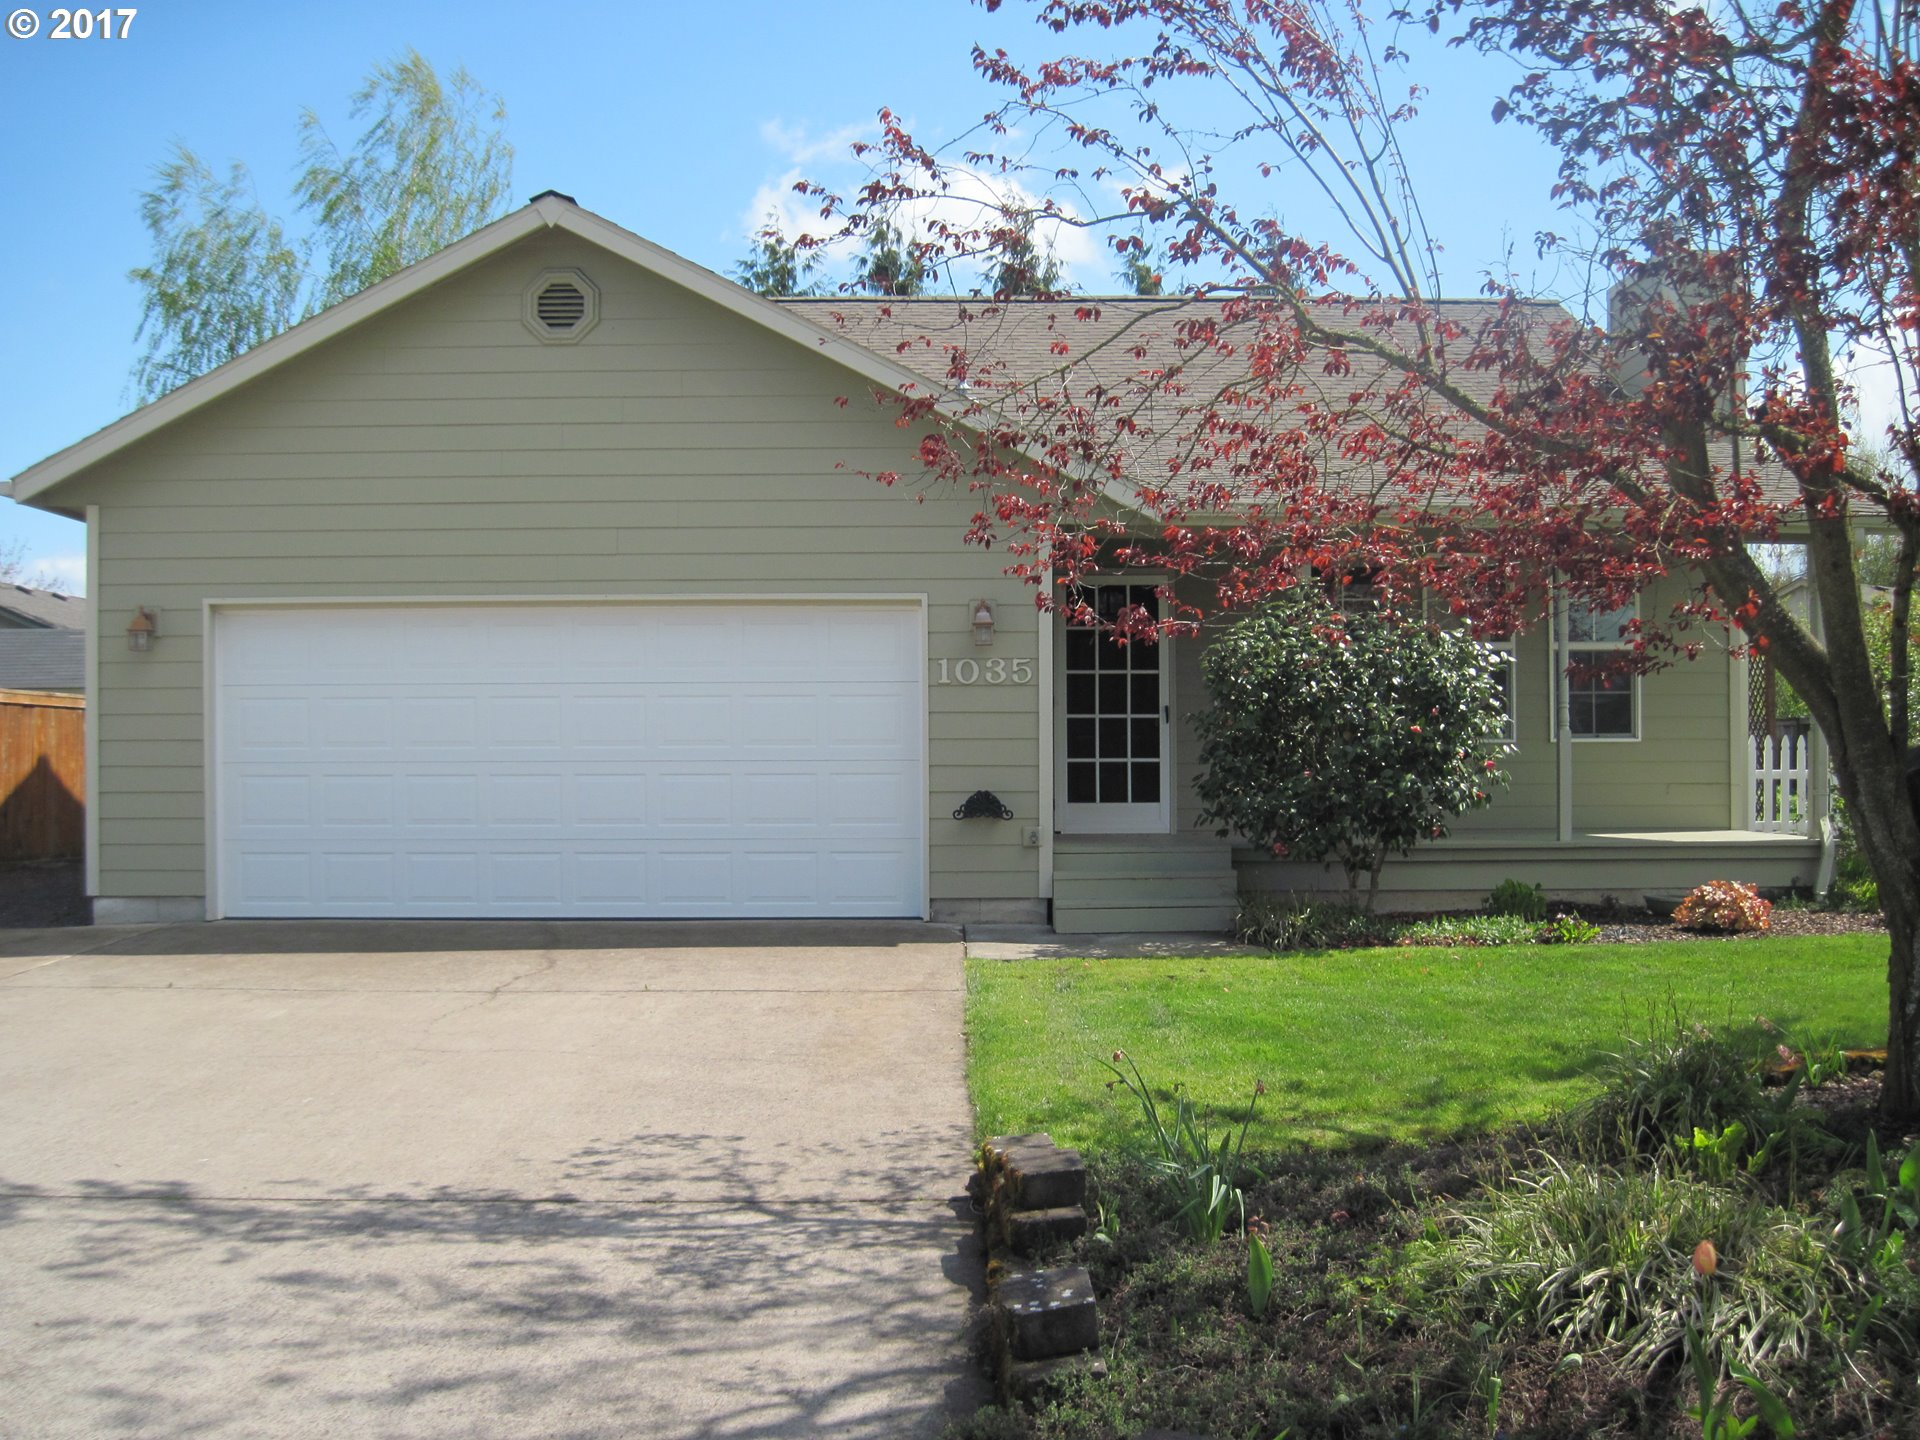 1035 W 17TH AVE, Junction City, OR 97448